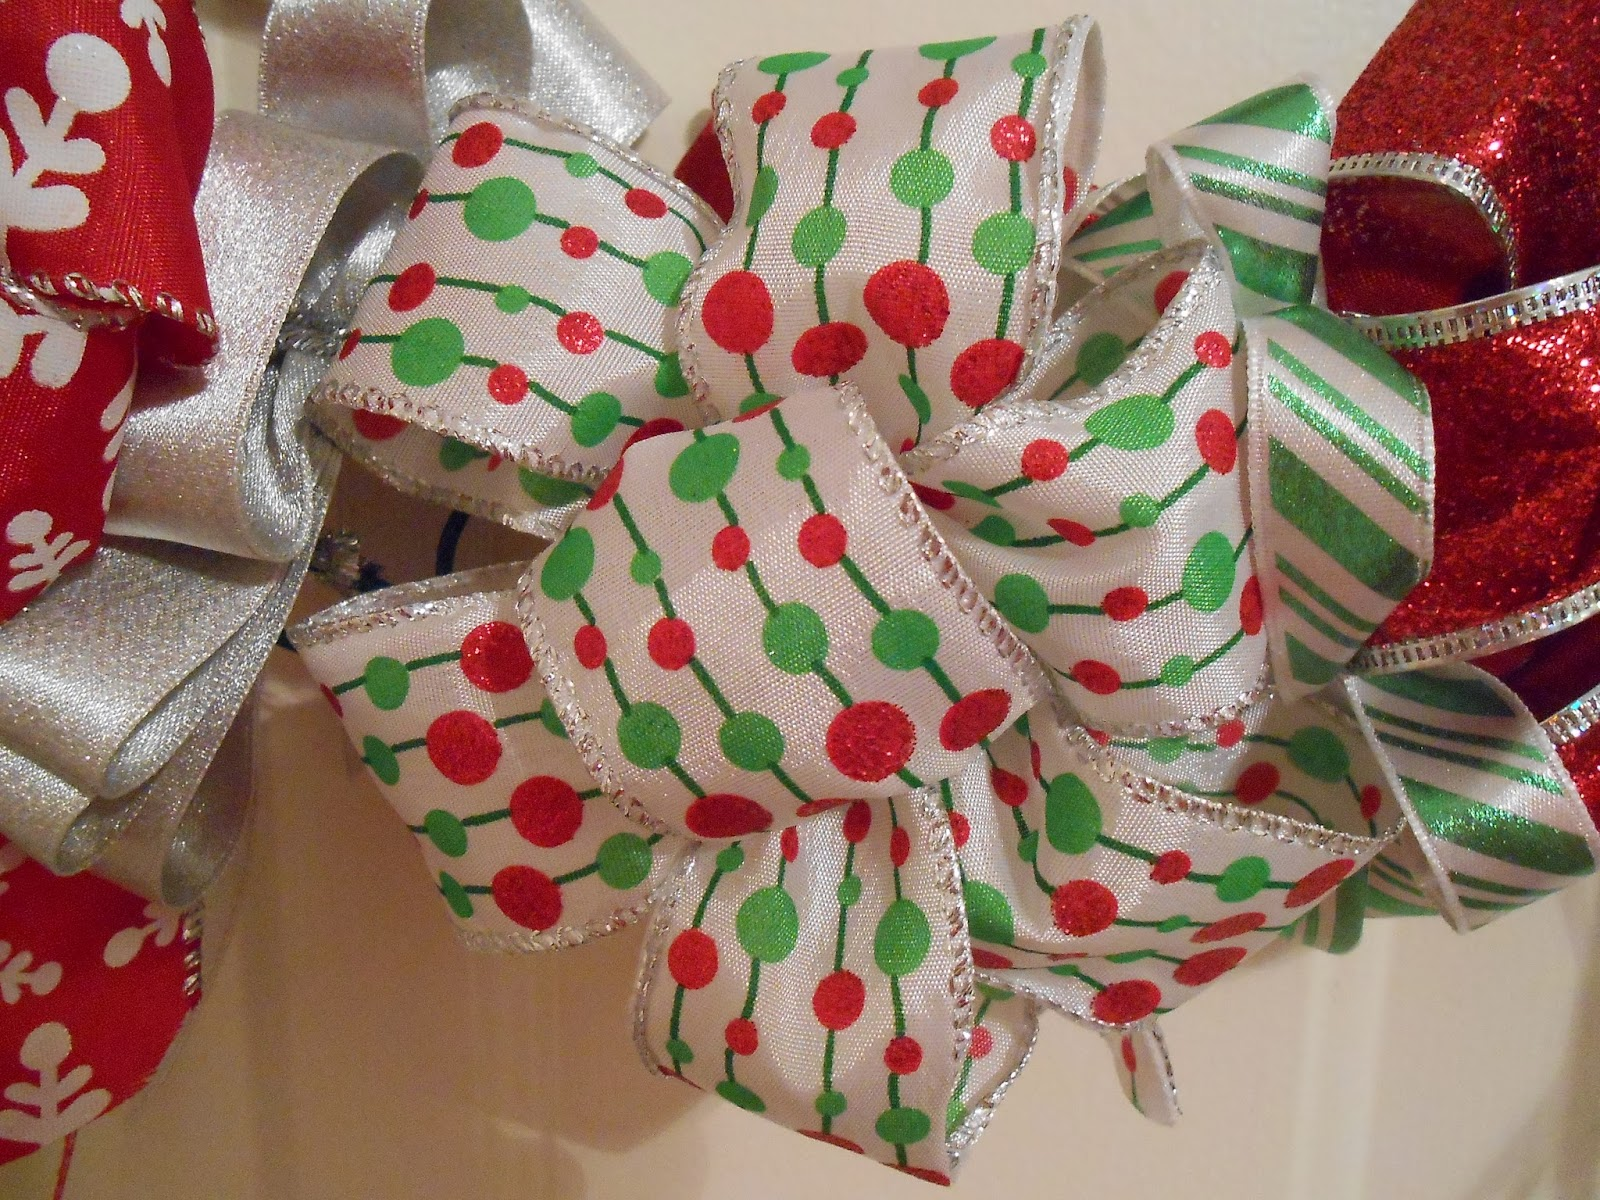 Christmas bow wreath delish dishes from michele i know some people have bow makers they use but honestly making them yourself makes you feel so accomplished but choose to do it however you like solutioingenieria Choice Image